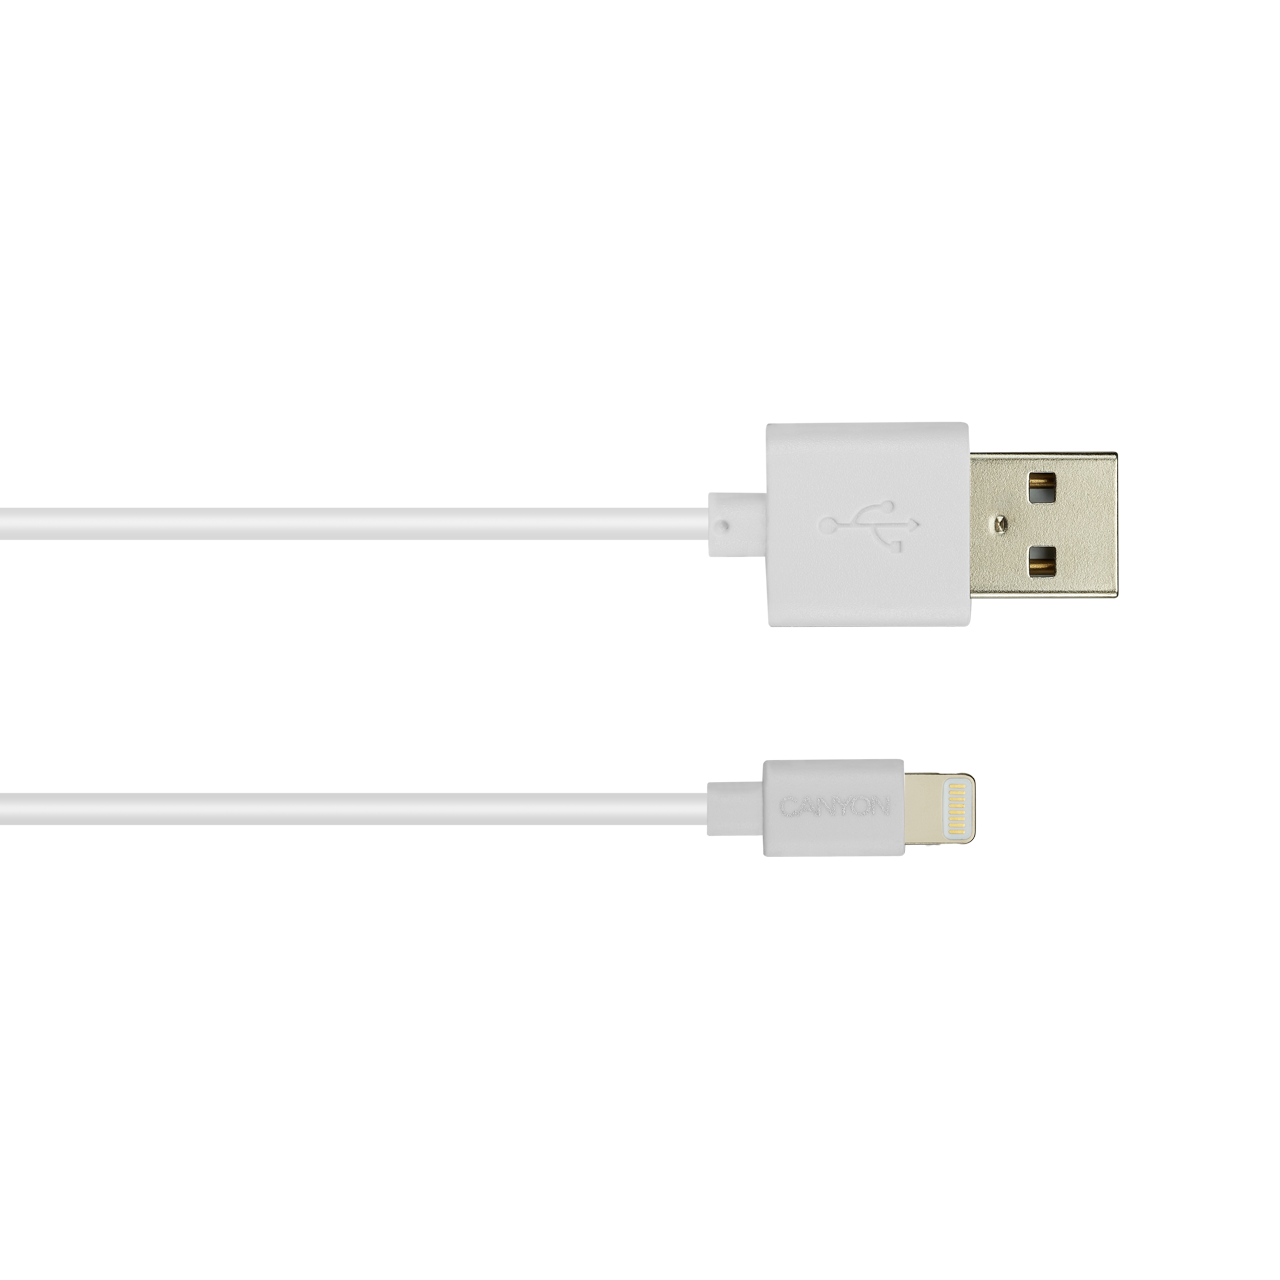 CNS-MFICAB01W-product-connecter